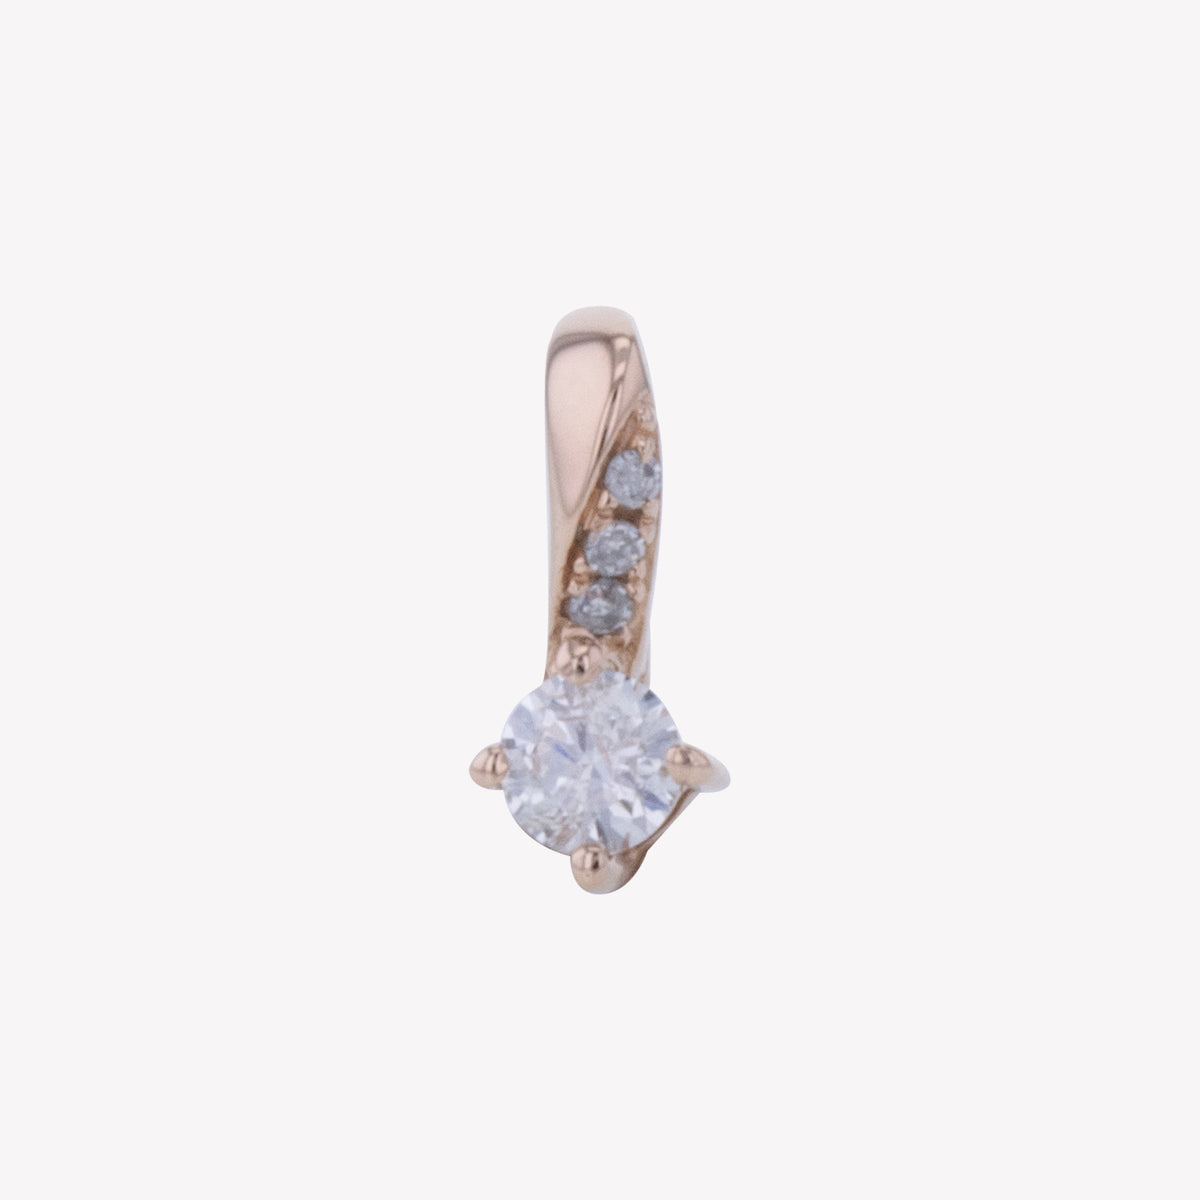 18K R/G Diamond Pendant